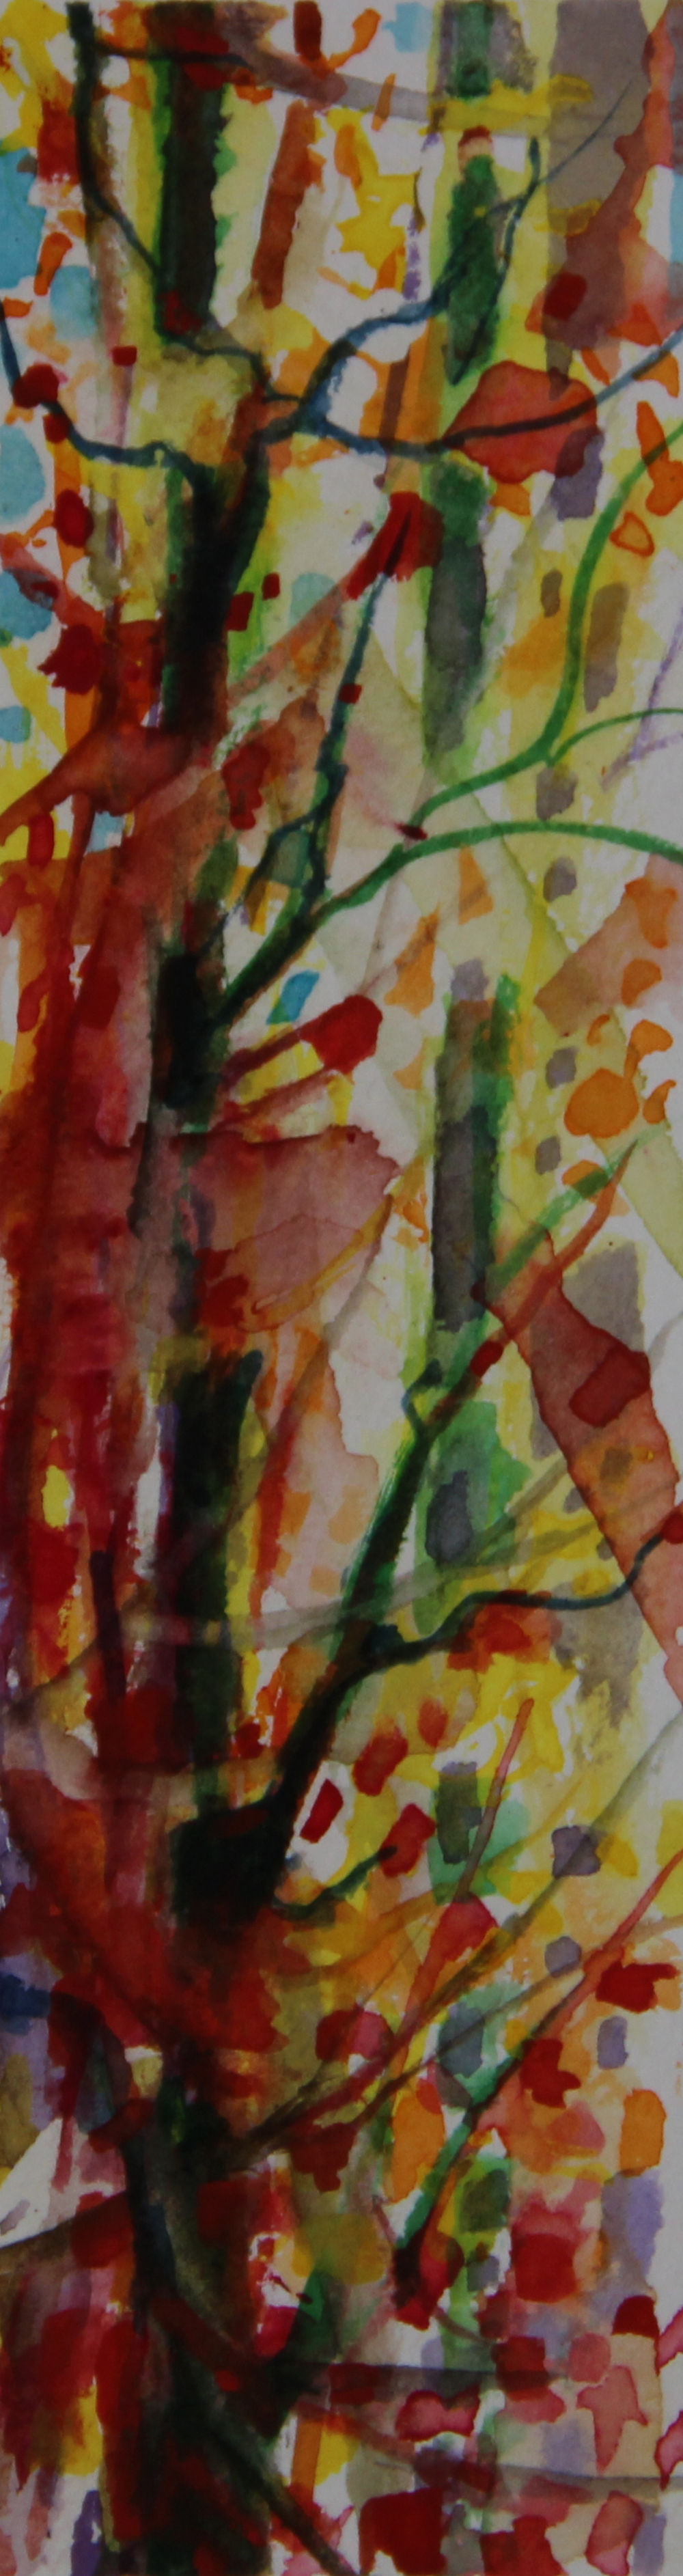 Autumn Forest Scene 05, about 6H x 2W inches watercolors on 140 lb cold pressed